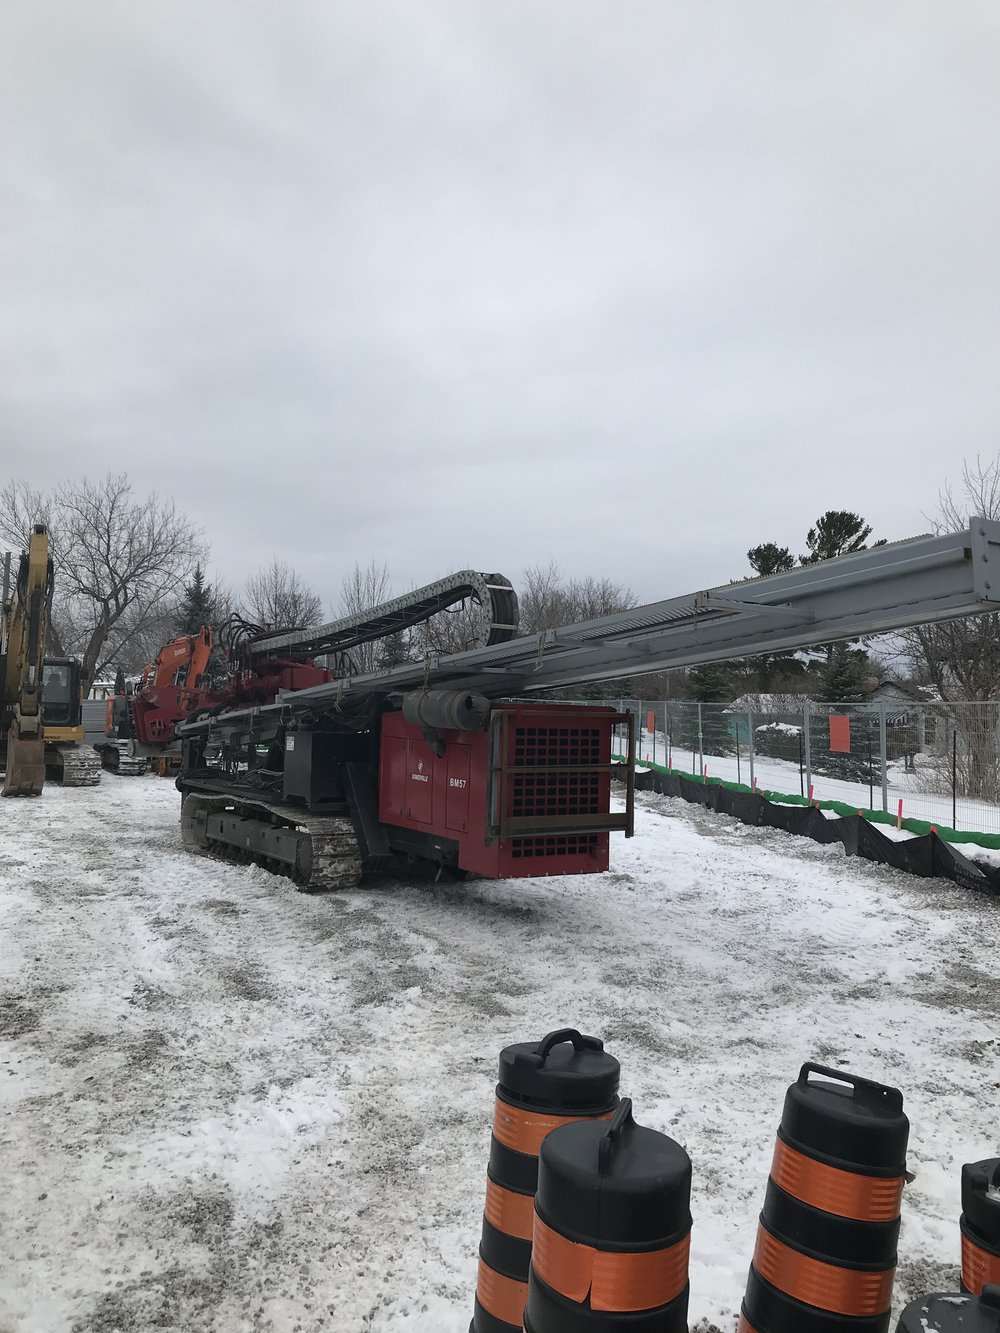 The Horizontal Directional Drill (HDD) being unloaded. The HDD was used to bore a hole that the new natural gas pipeline would be inserted through.